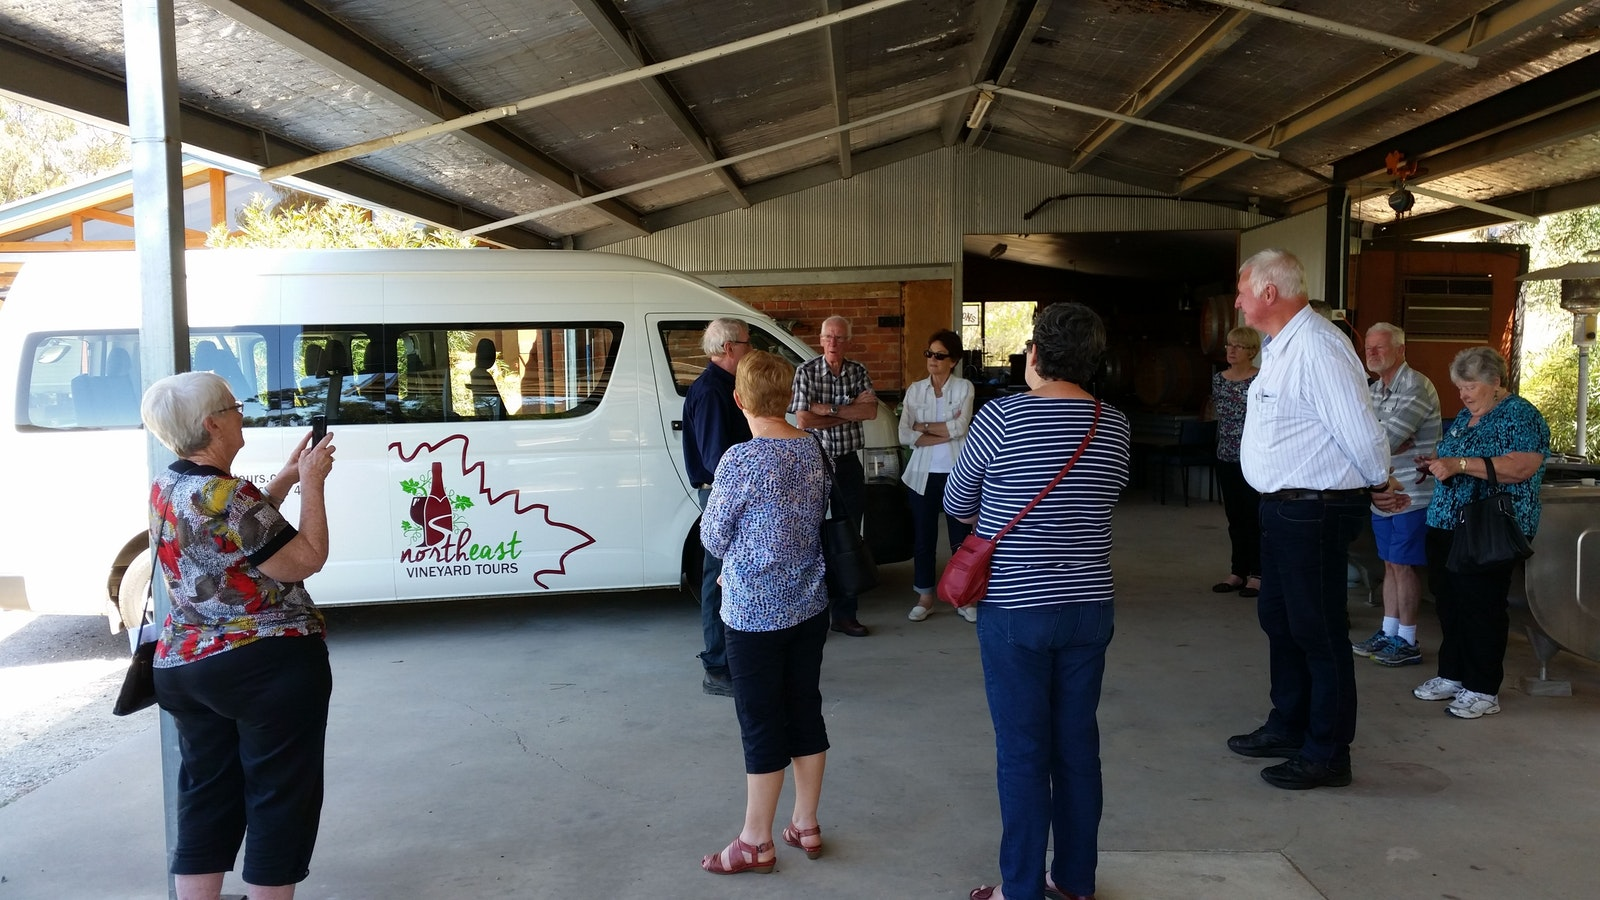 North East Vineyard Tours